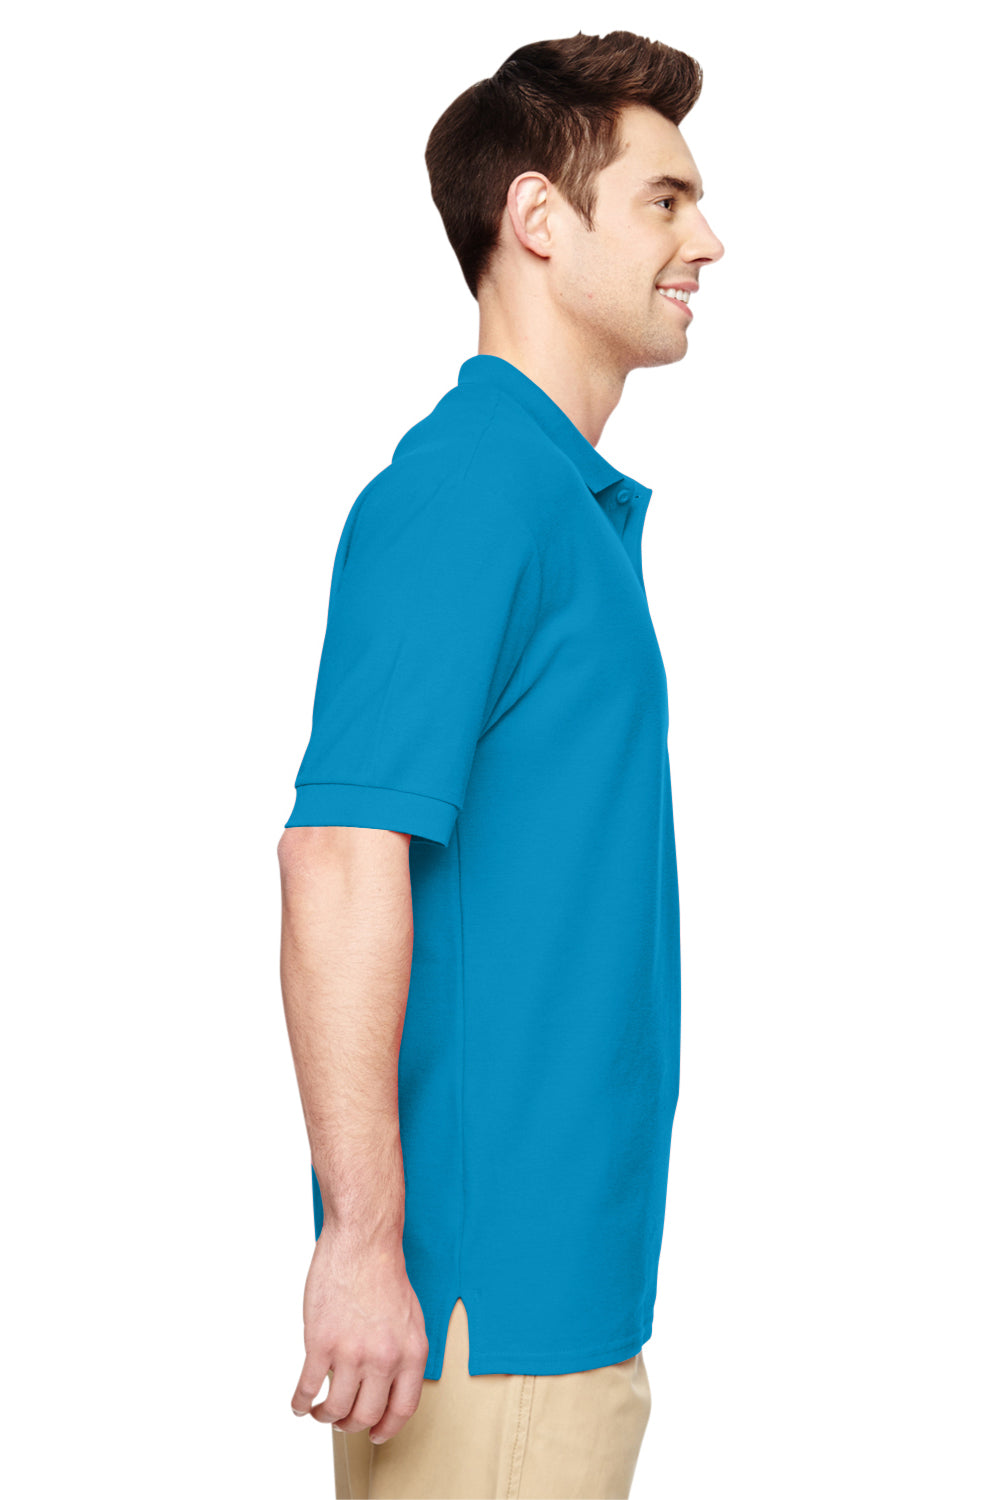 Gildan G828 Mens Short Sleeve Polo Shirt Sapphire Blue Side